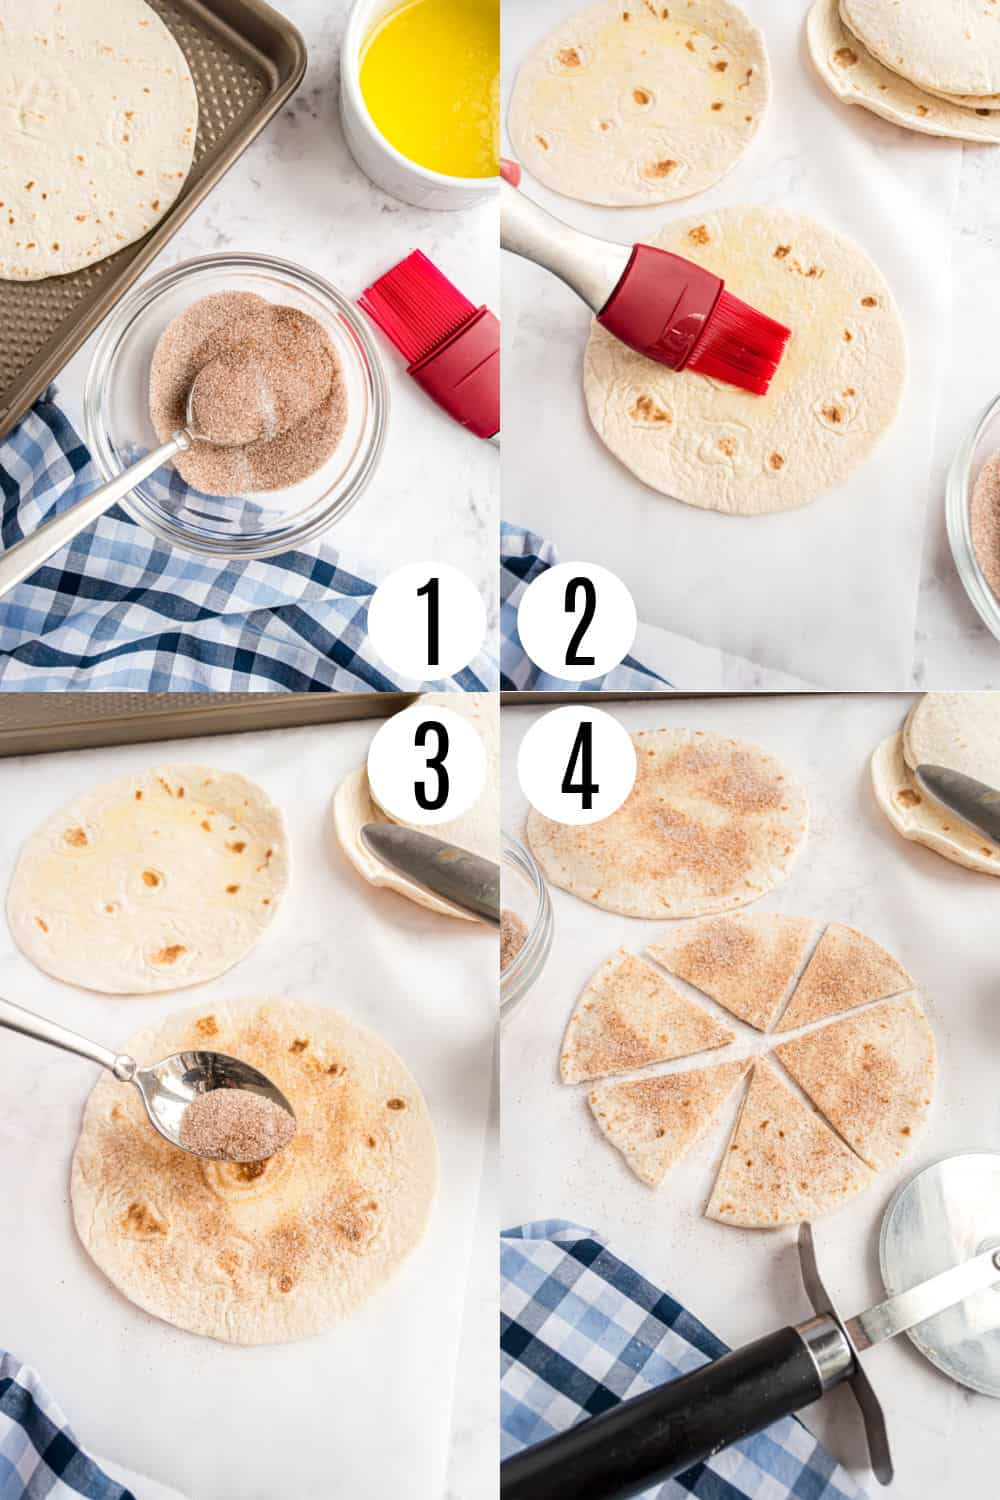 Step by step photos showing how to make baked cinnamon sugar tortilla chips.